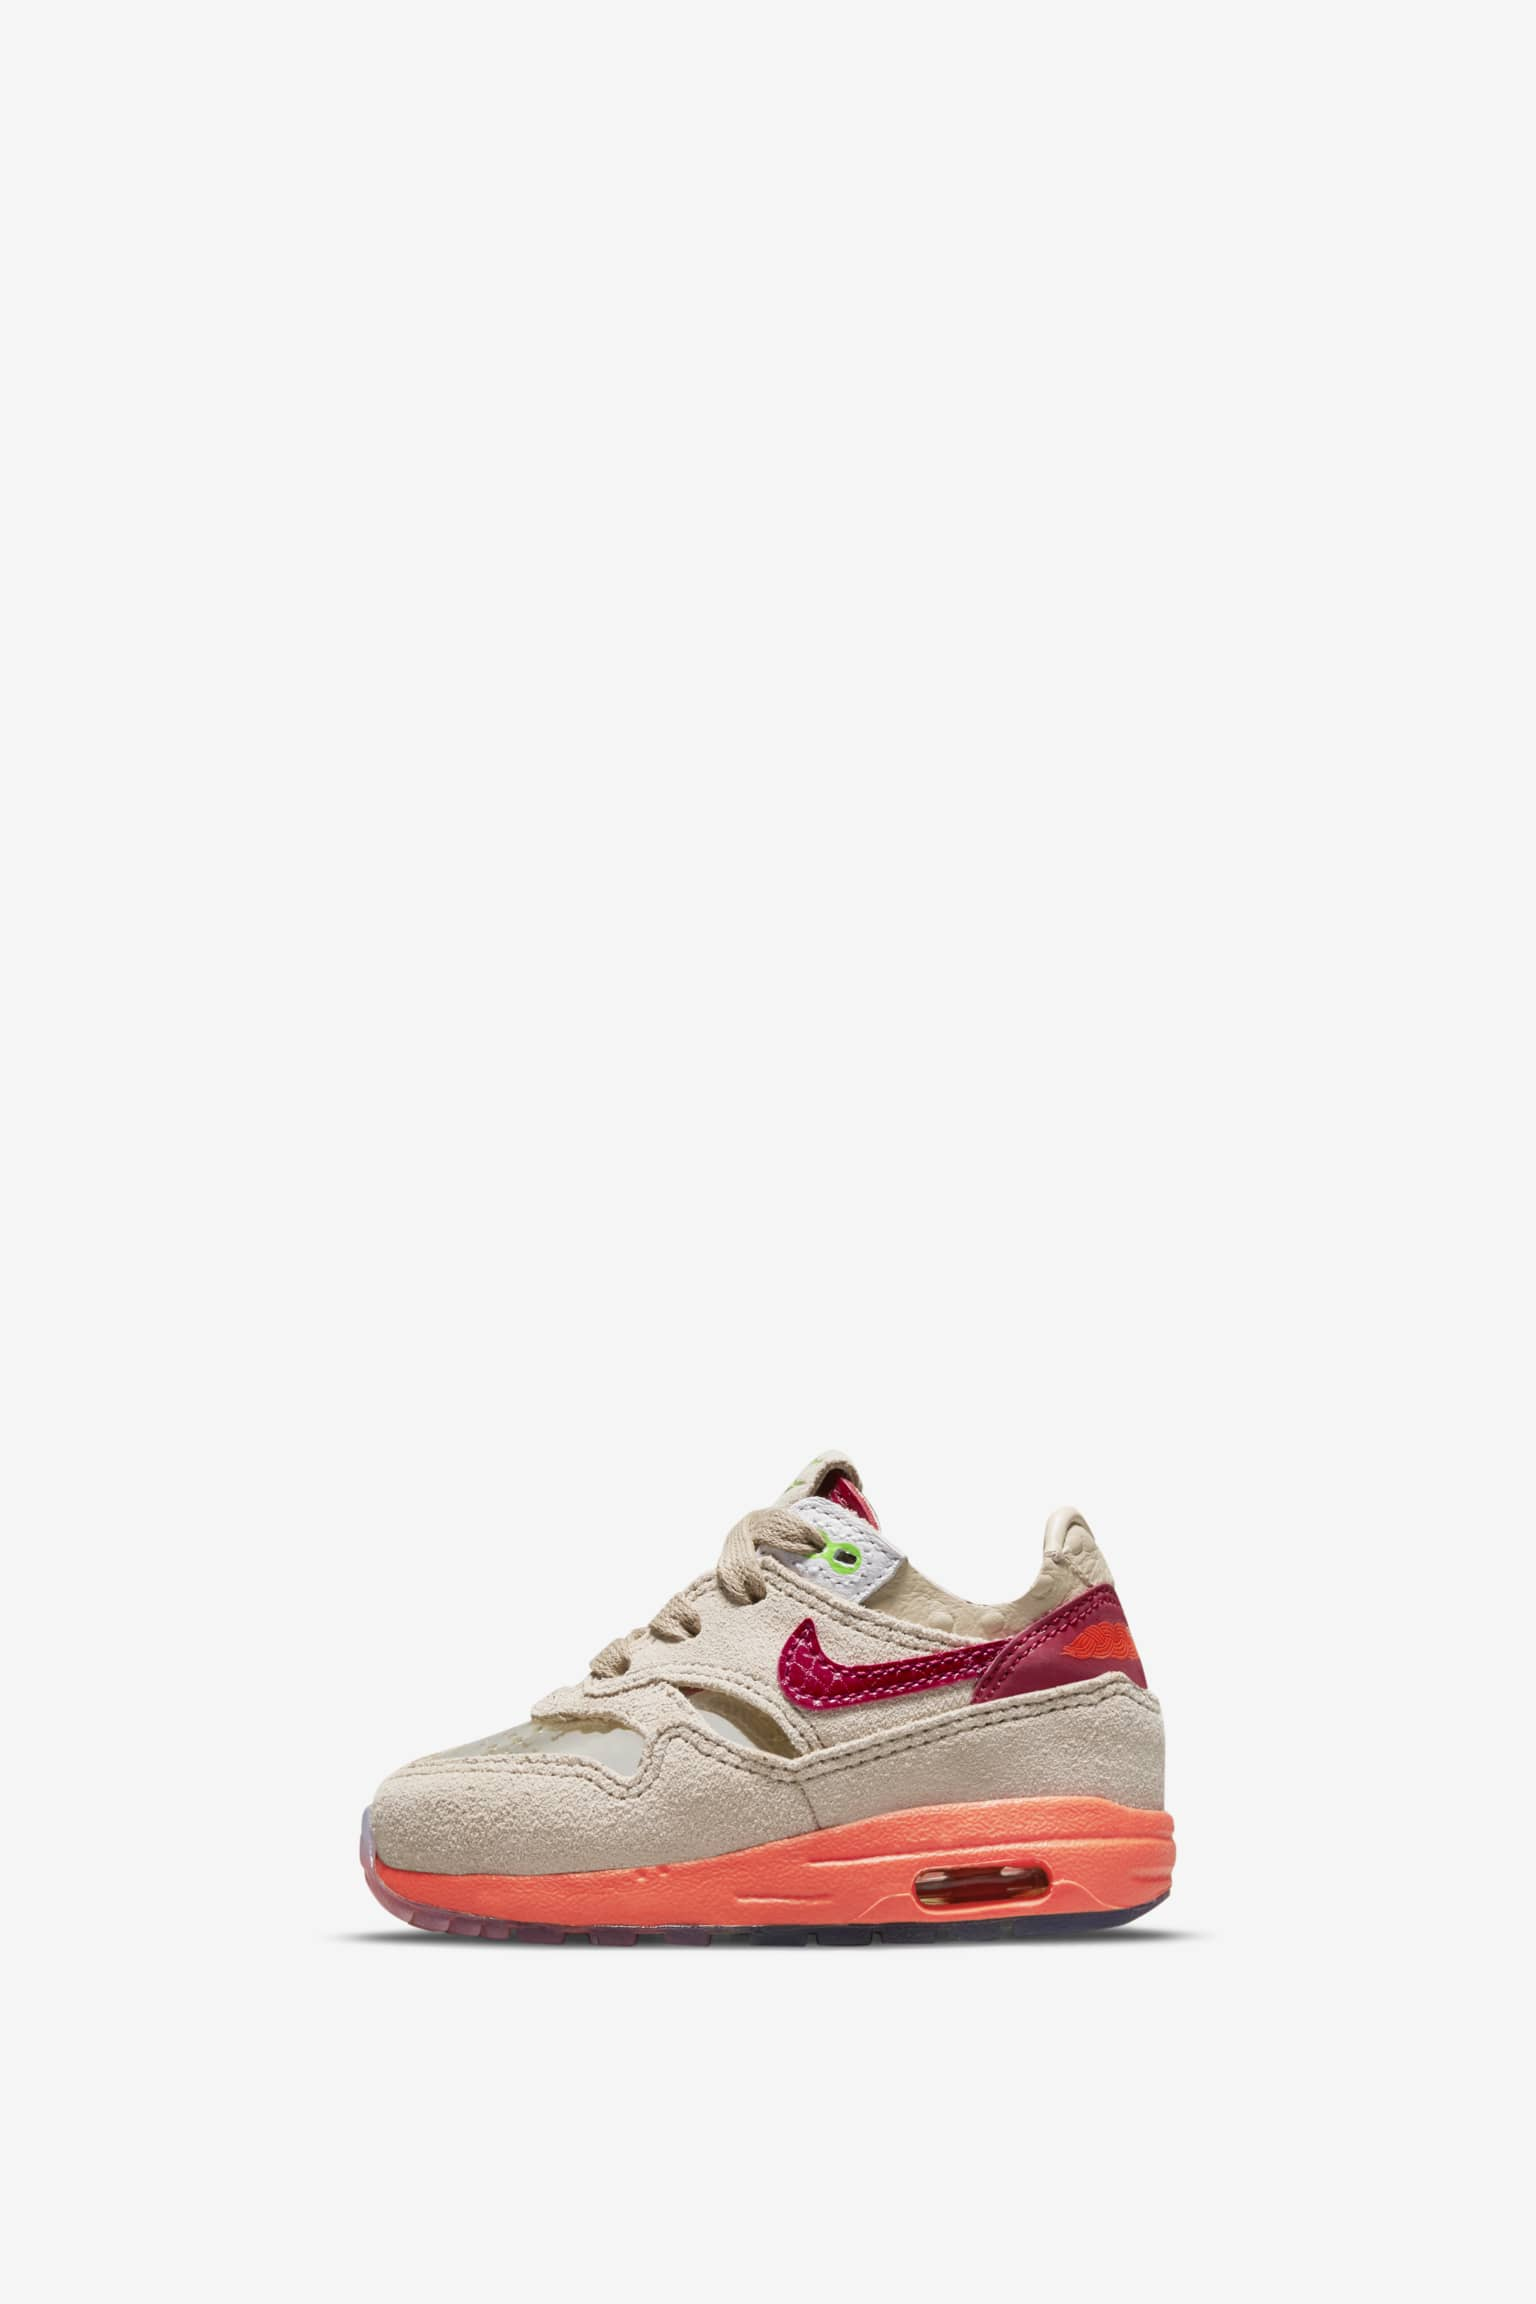 Younger Kids' Air Max 1 x CLOT 'Net' Release Date. Nike SNKRS MY